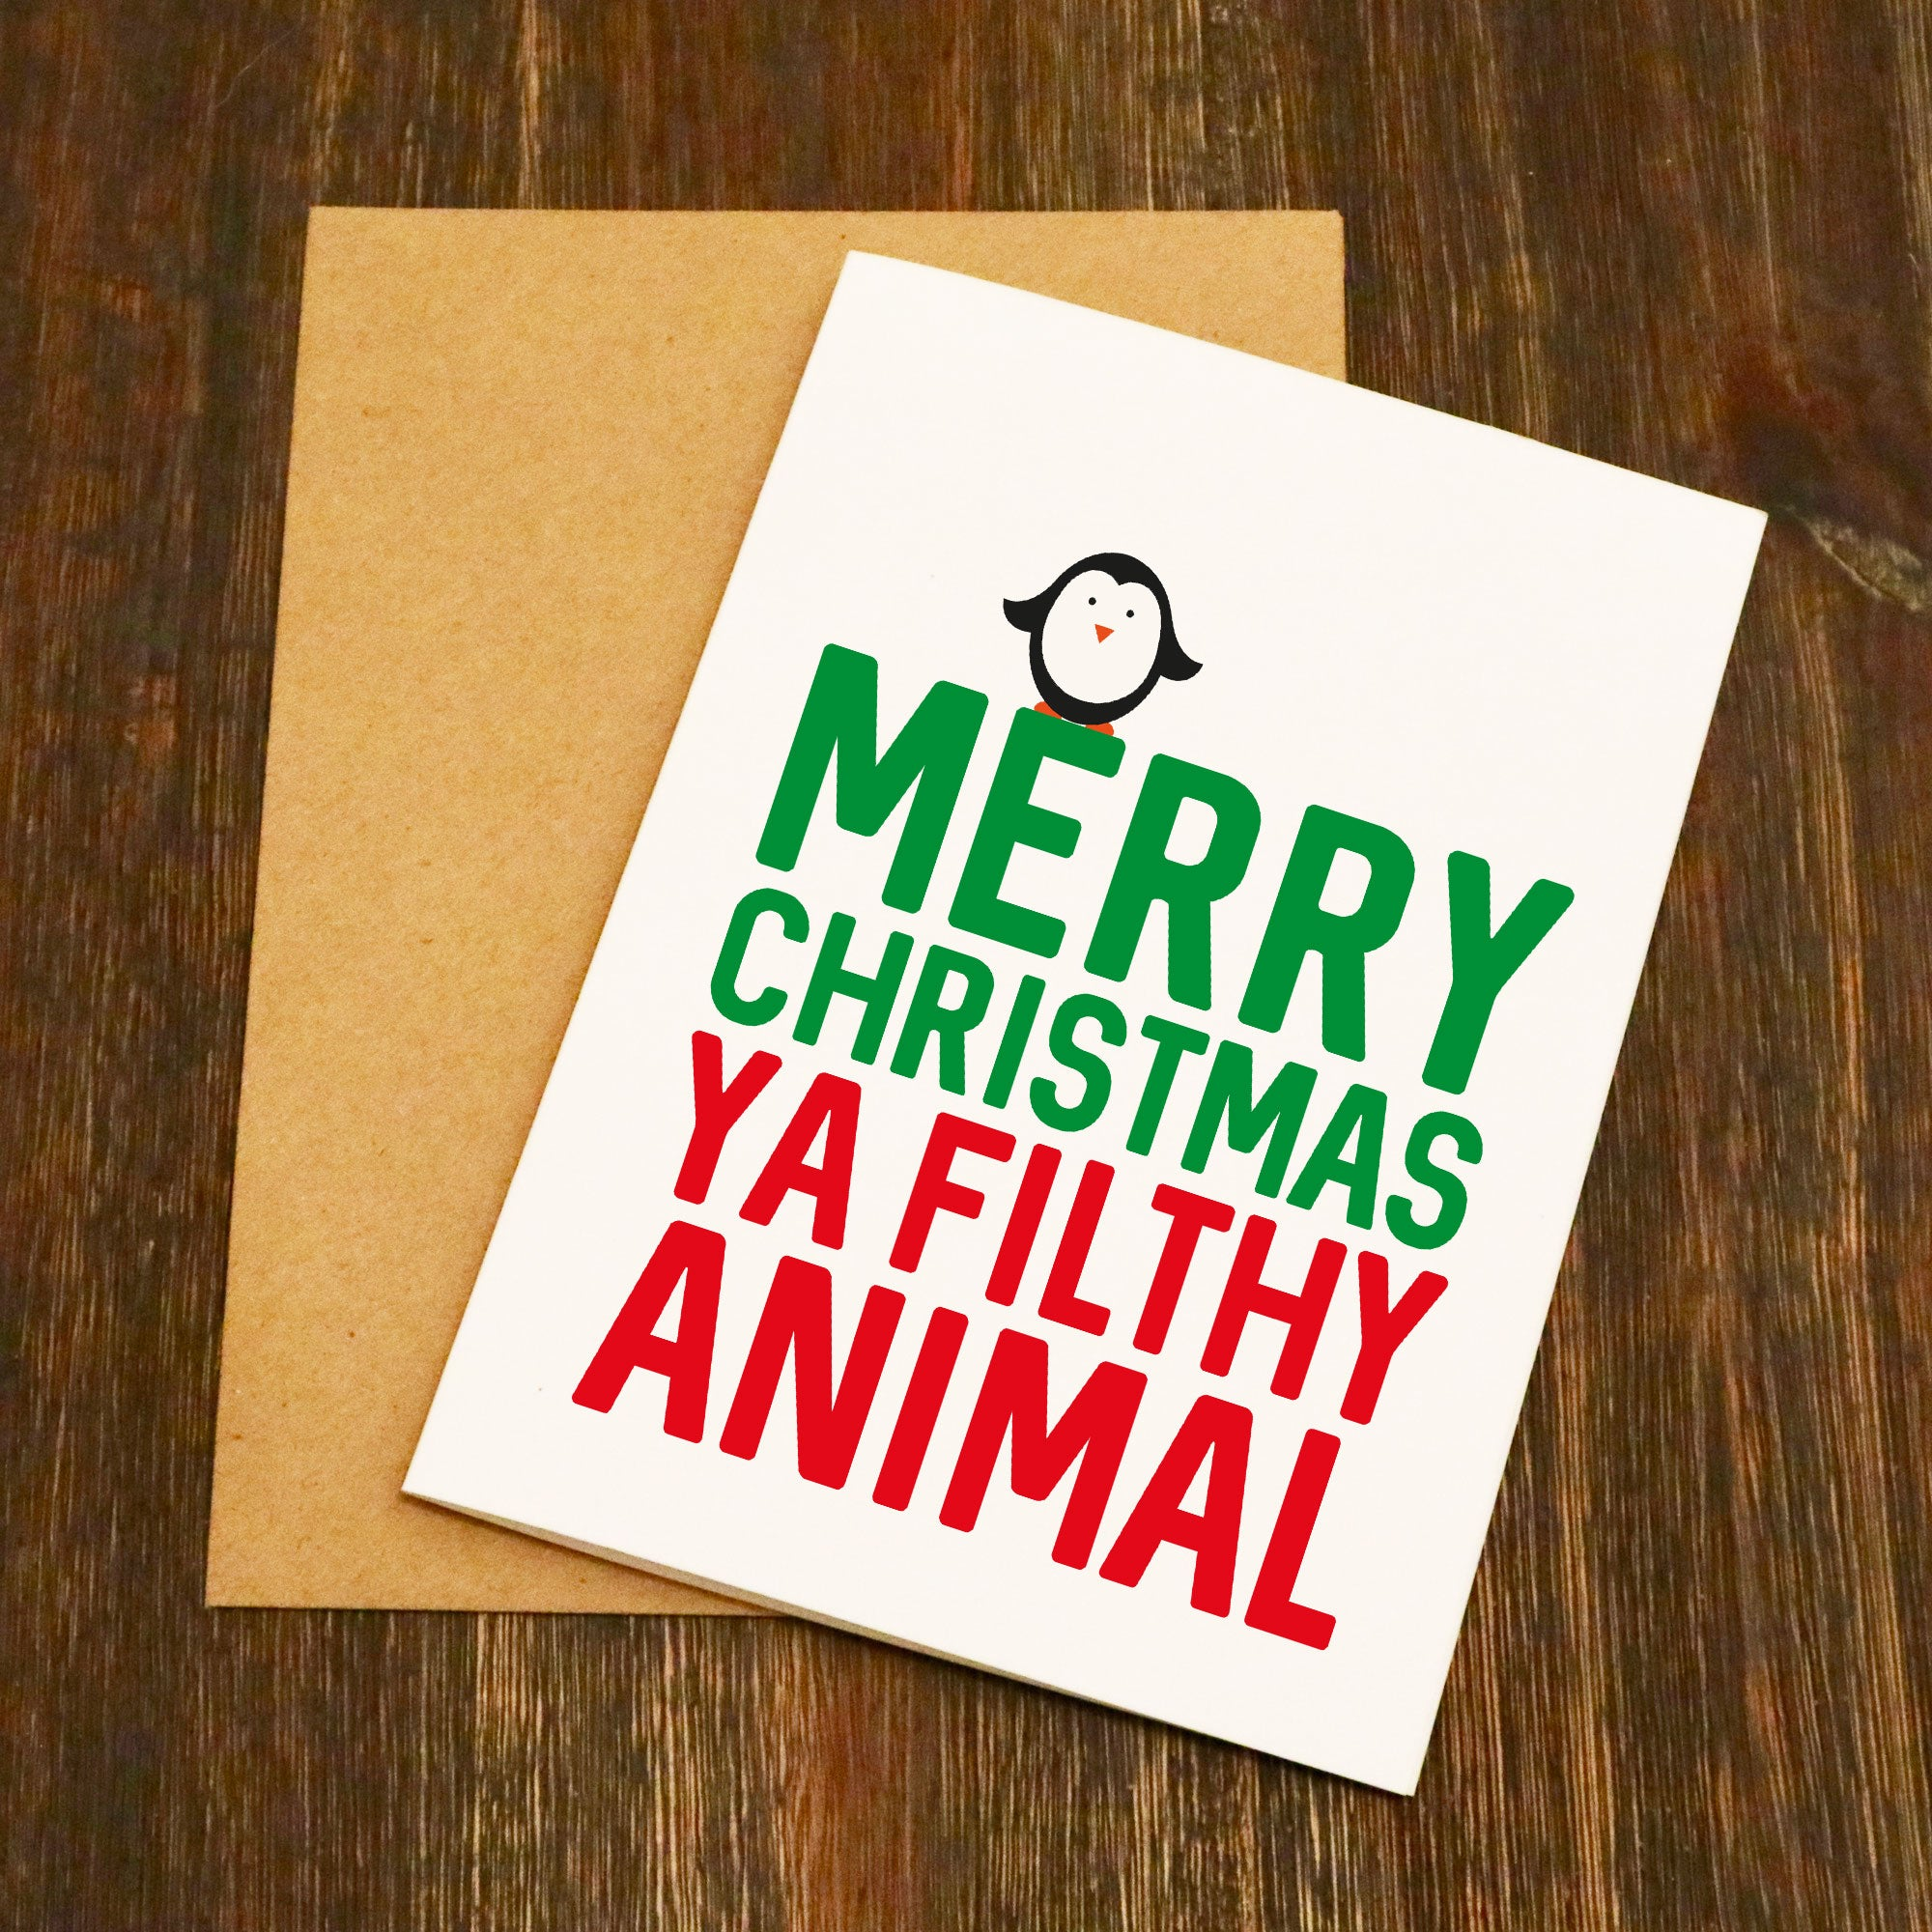 Merry Christmas Ya Flithy Animal Funny Adult Christmas Card ...